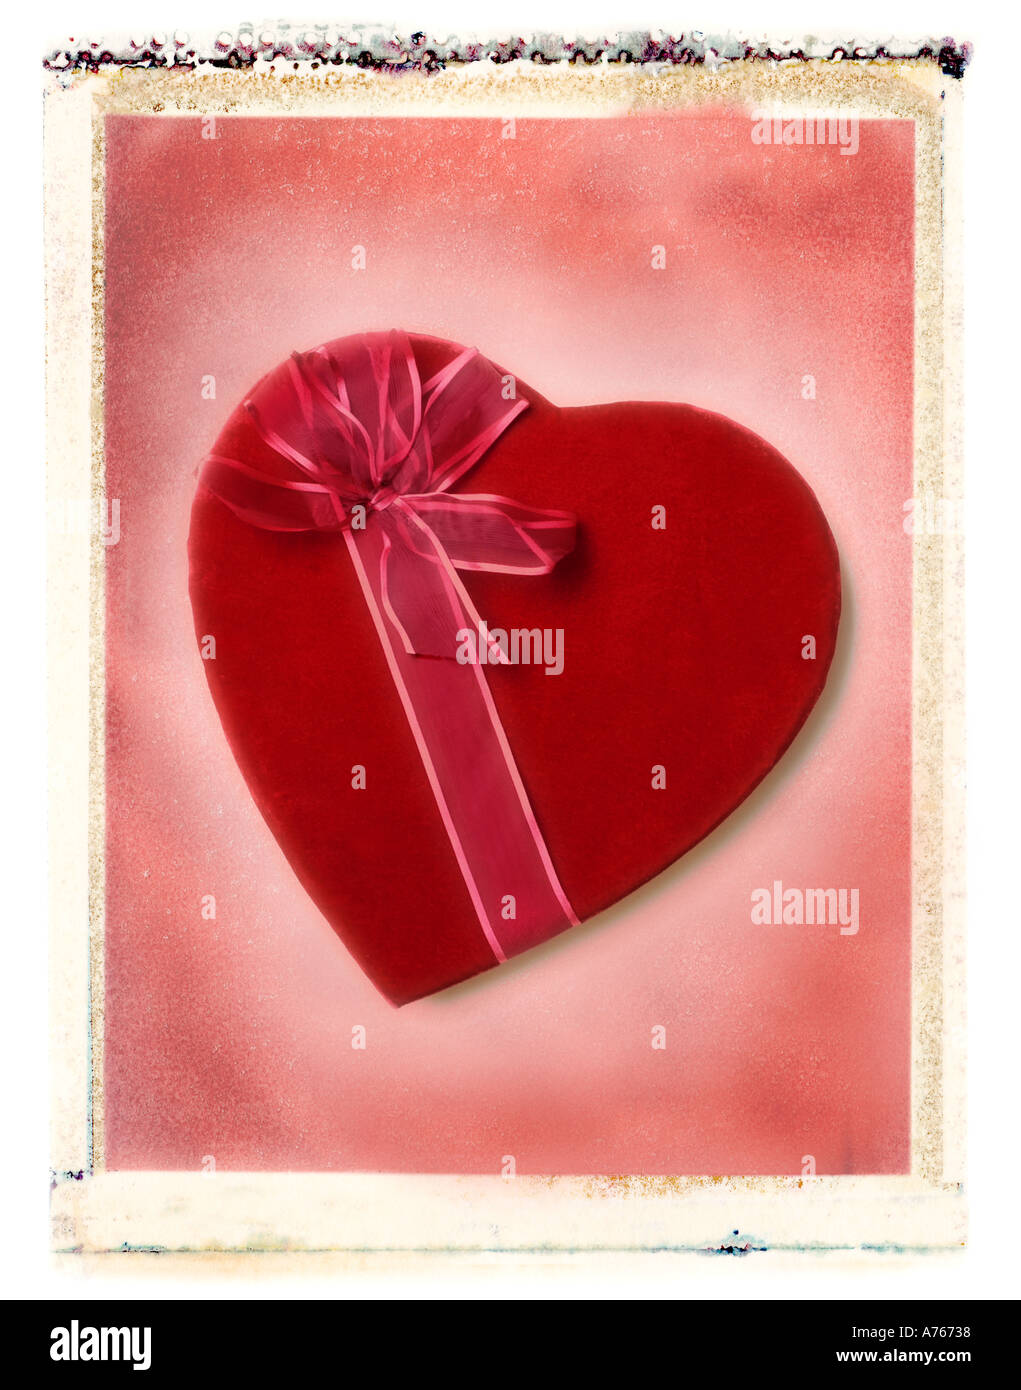 valentine s day candy heart gift - Stock Image